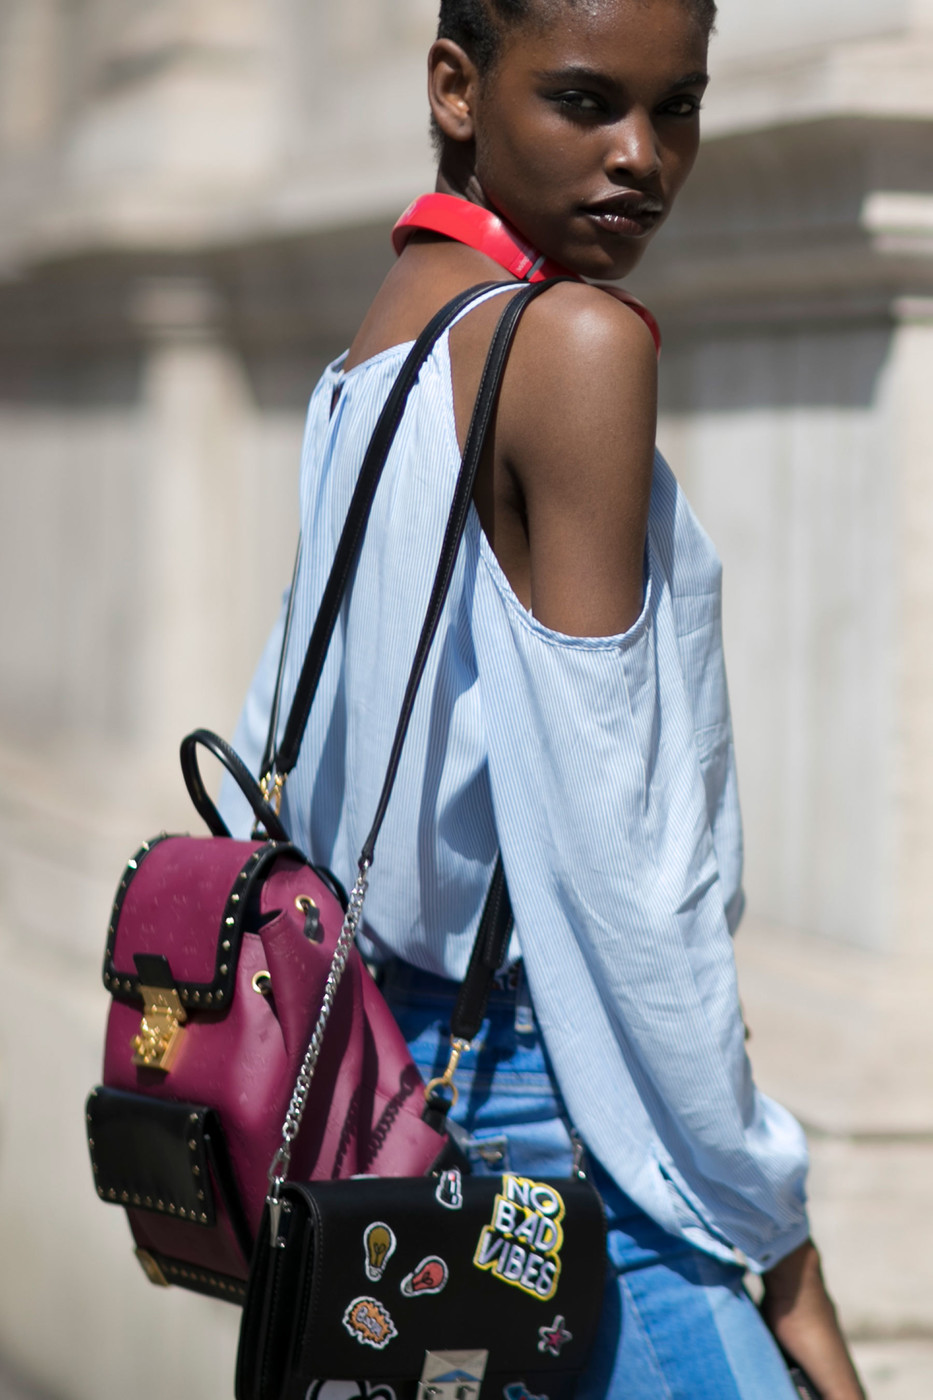 Street Style: Amilna Estevão's Off-the-Shoulder Look